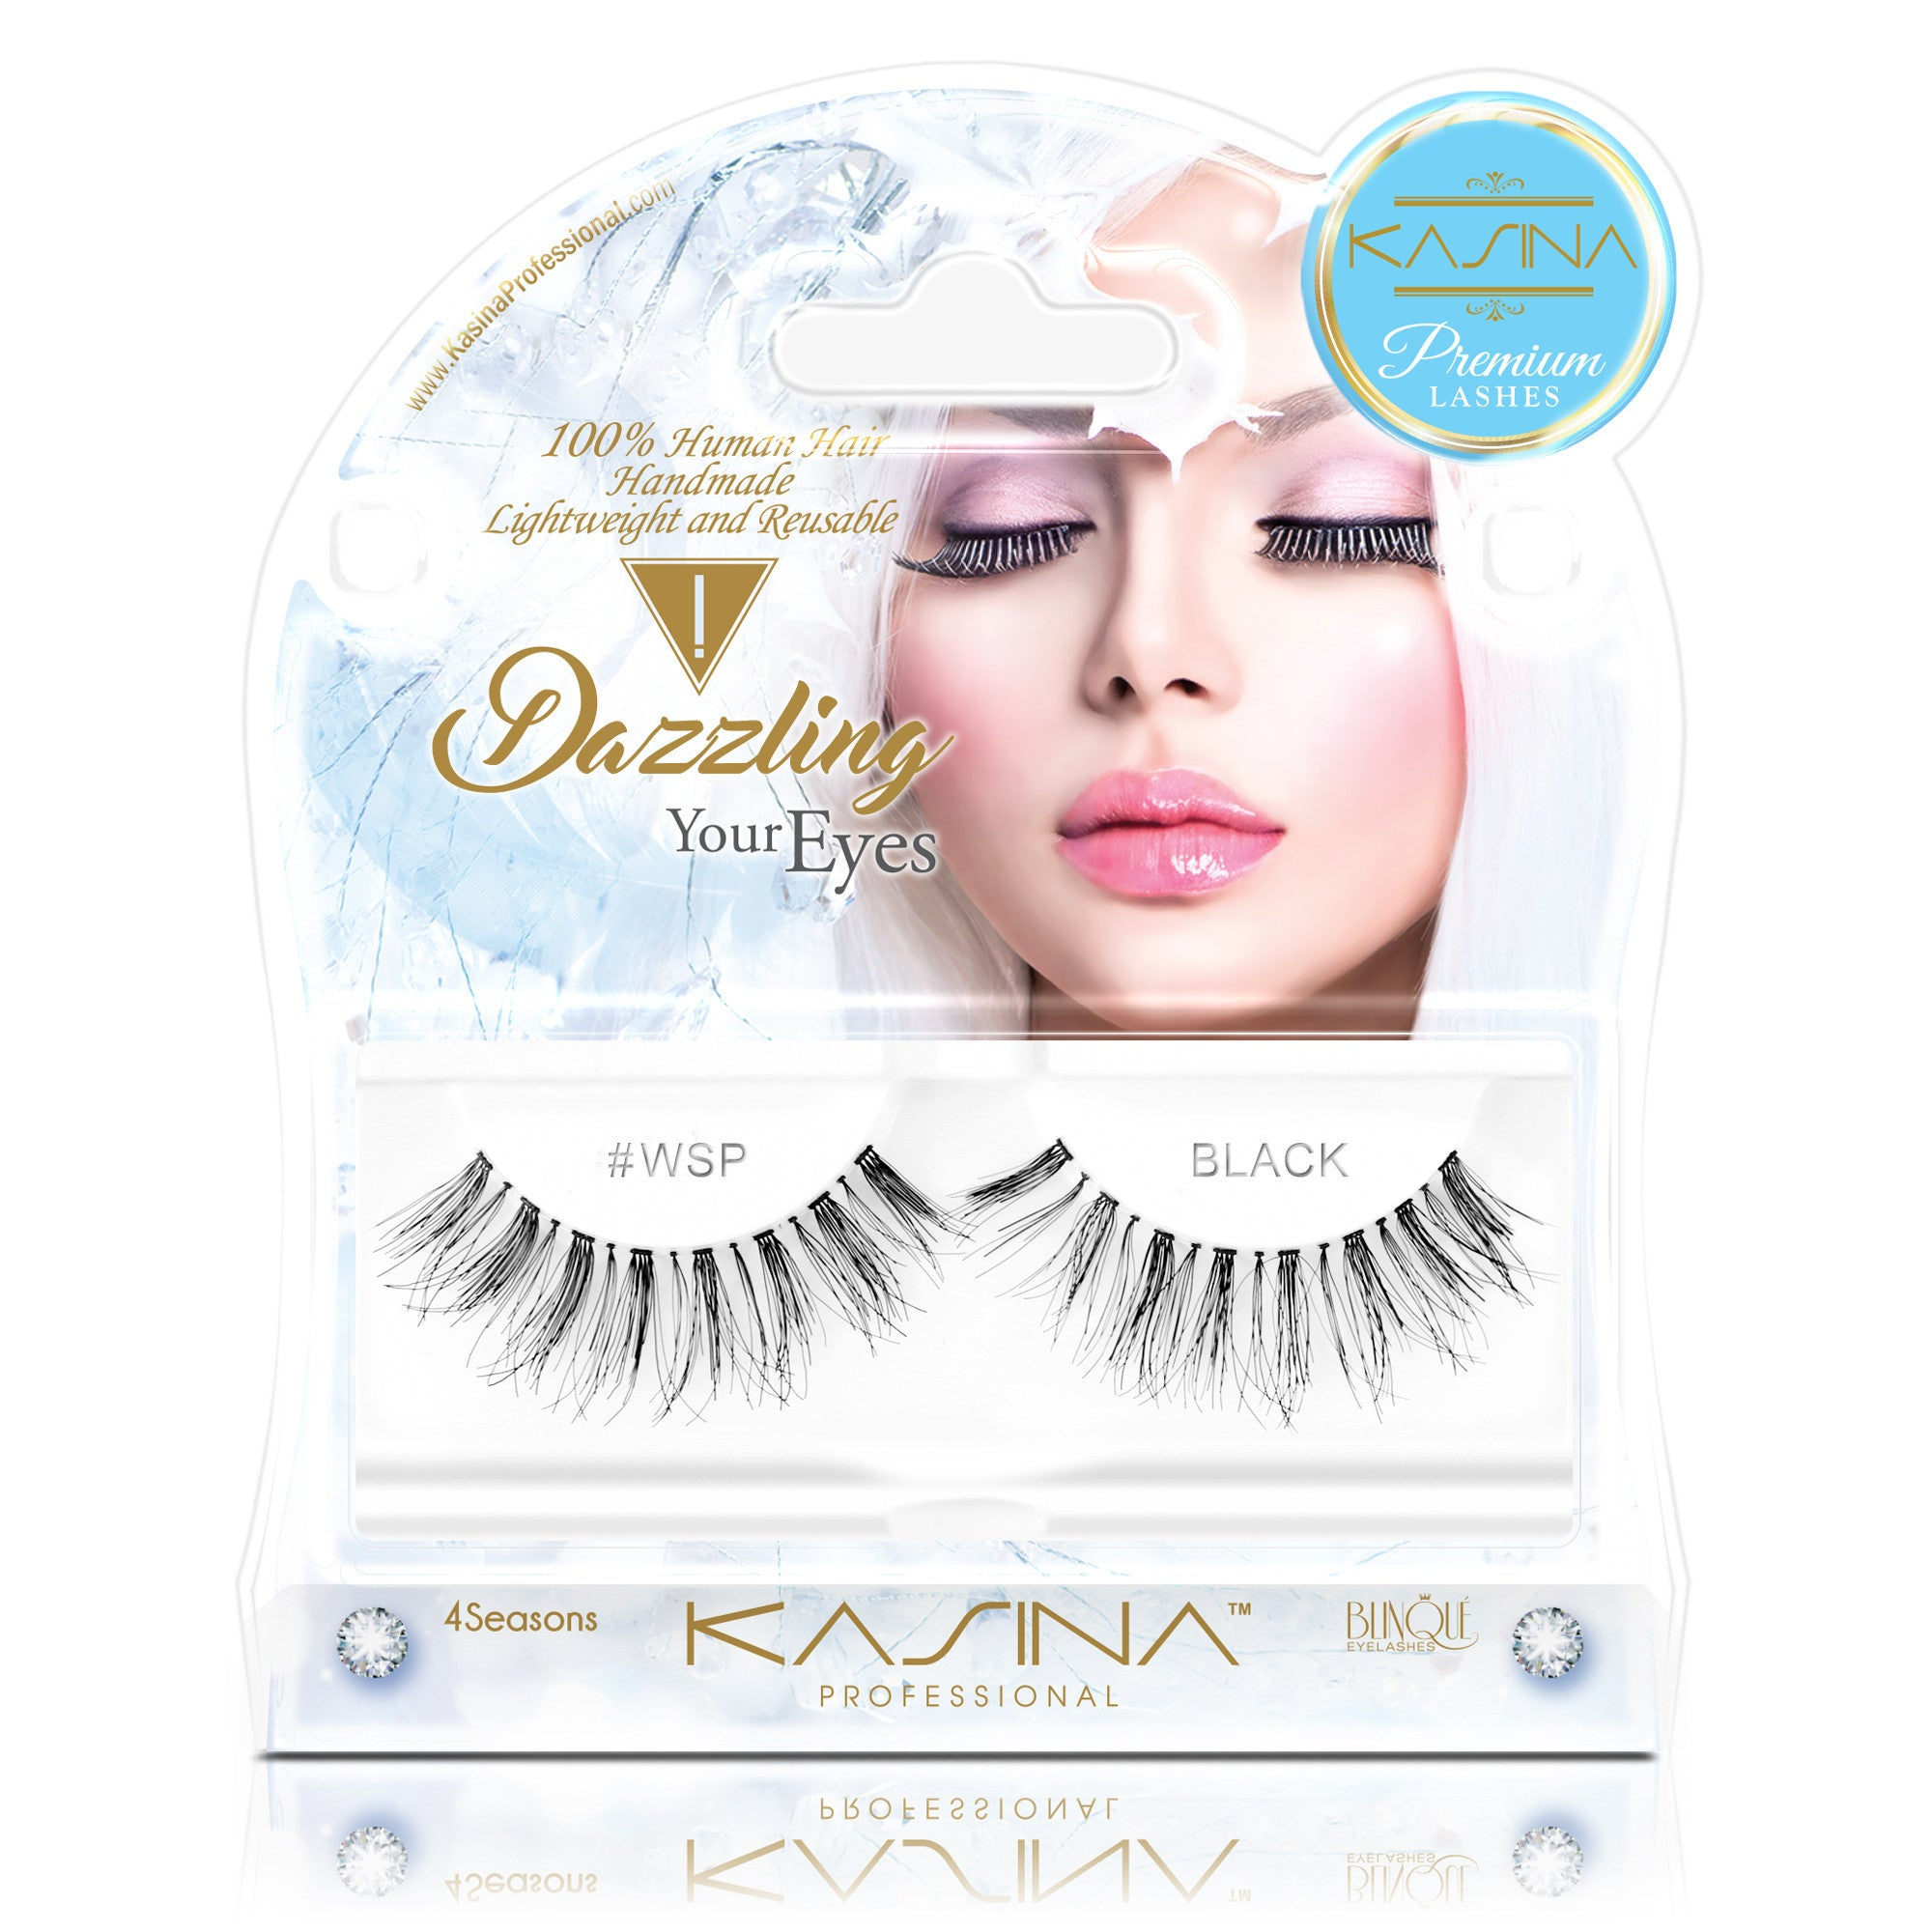 False Lashes - Premium Dazzling #WSP, Wispies - Recommended by Professional Makeup Artists.